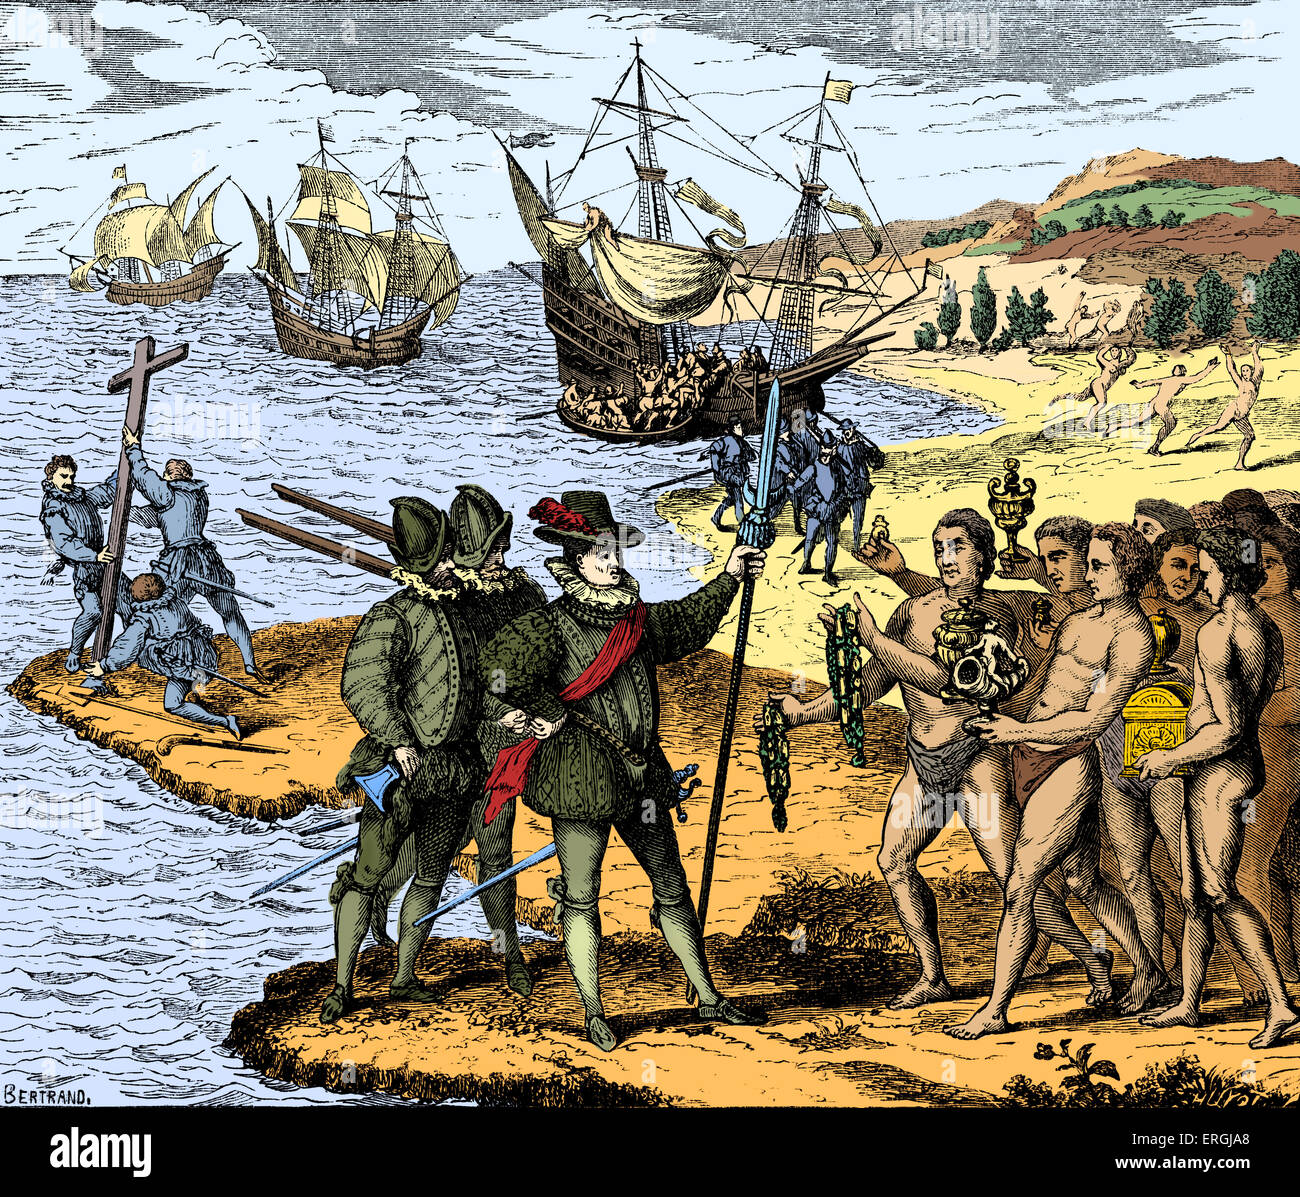 Christopher Columbus Setting Foot On American Soil For The First Time Stock Photo Royalty Free